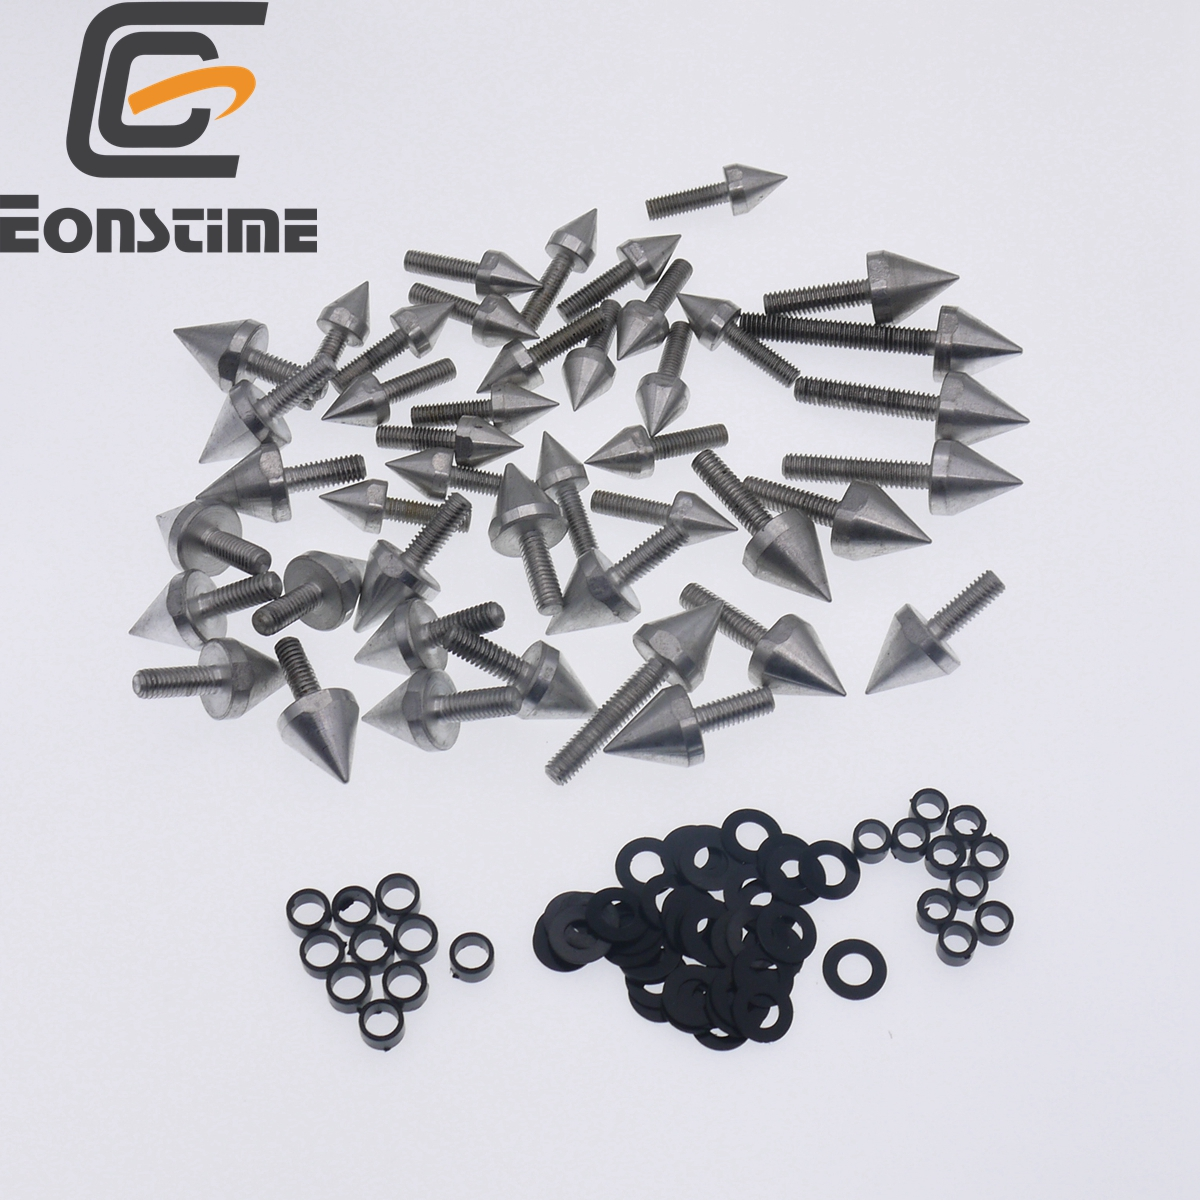 Eonstime set Spike Fairing Bolts Screws Washers Kit For